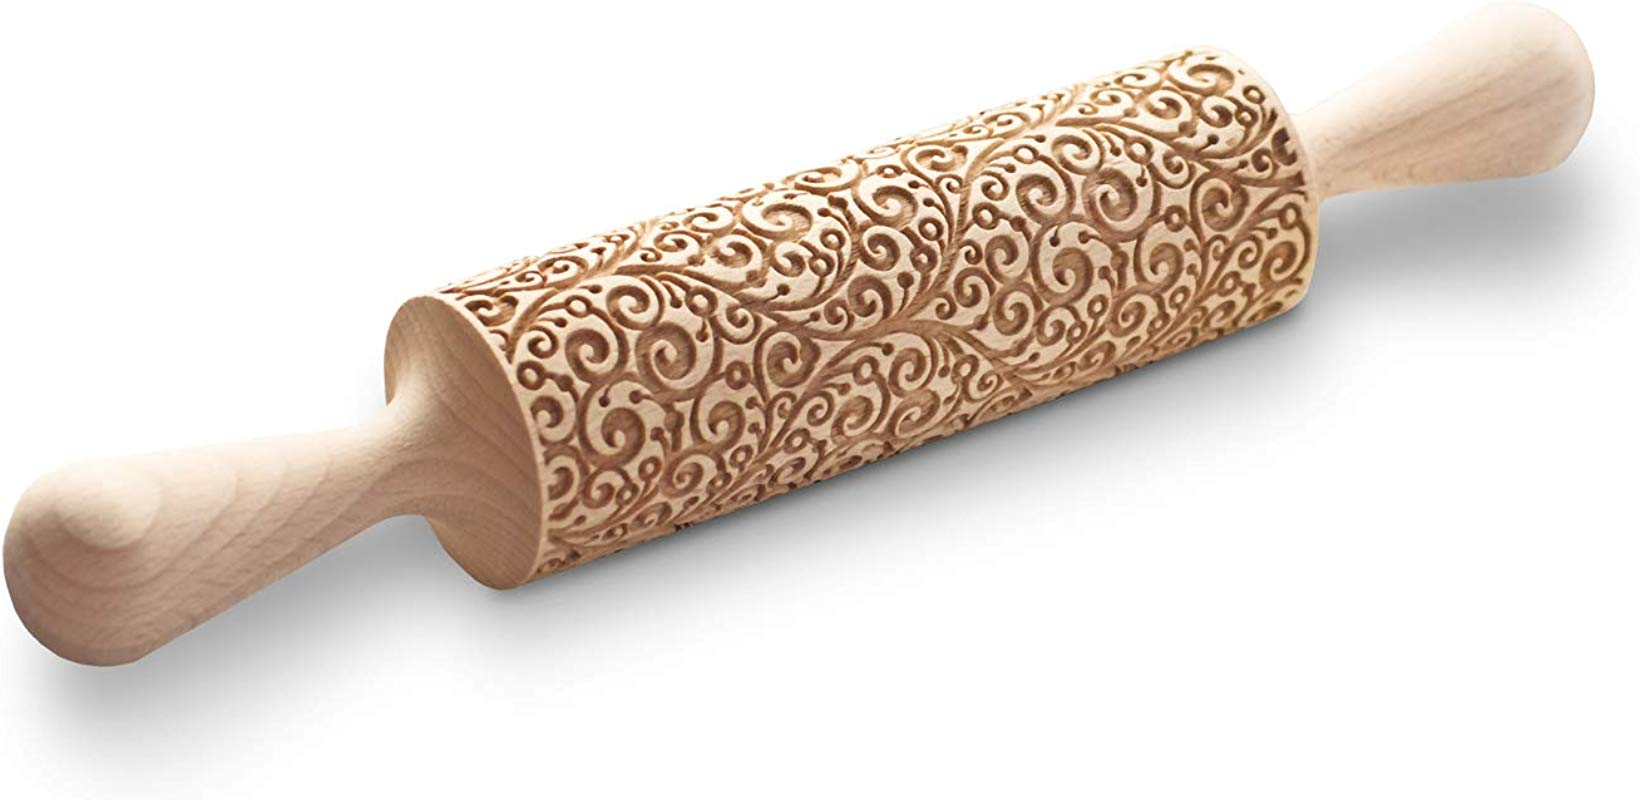 Rolling Pin With Curly 3D Pattern Cookie Stamp With Swirls Floral Imprint Utensil Twirly Flower Motive Embossing Roller